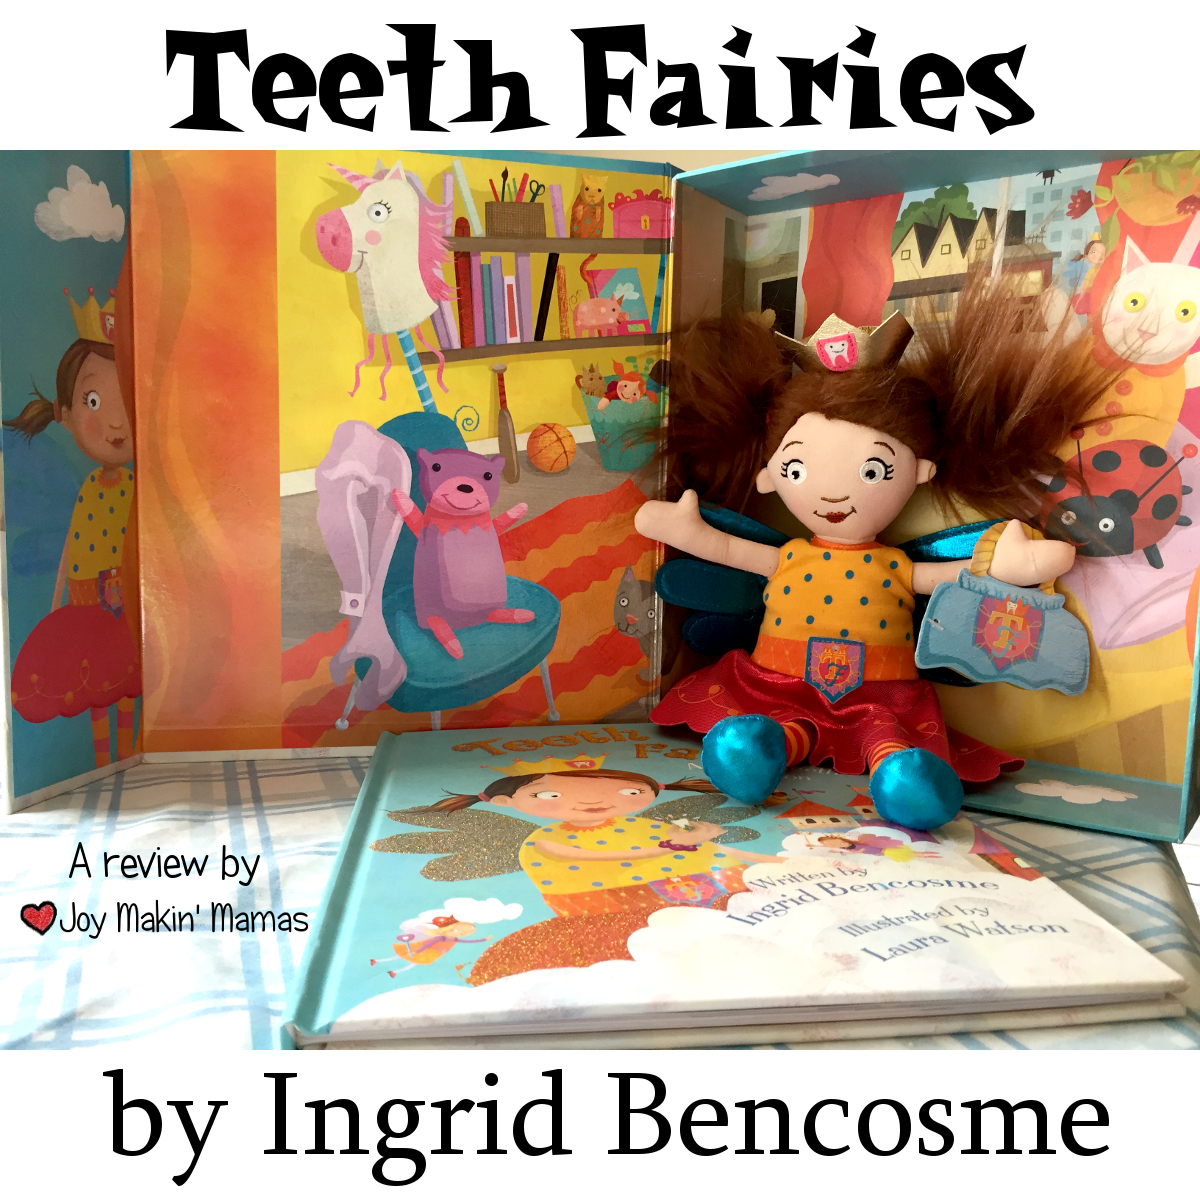 Teeth Fairies by Ingrid Bencosme horizontal